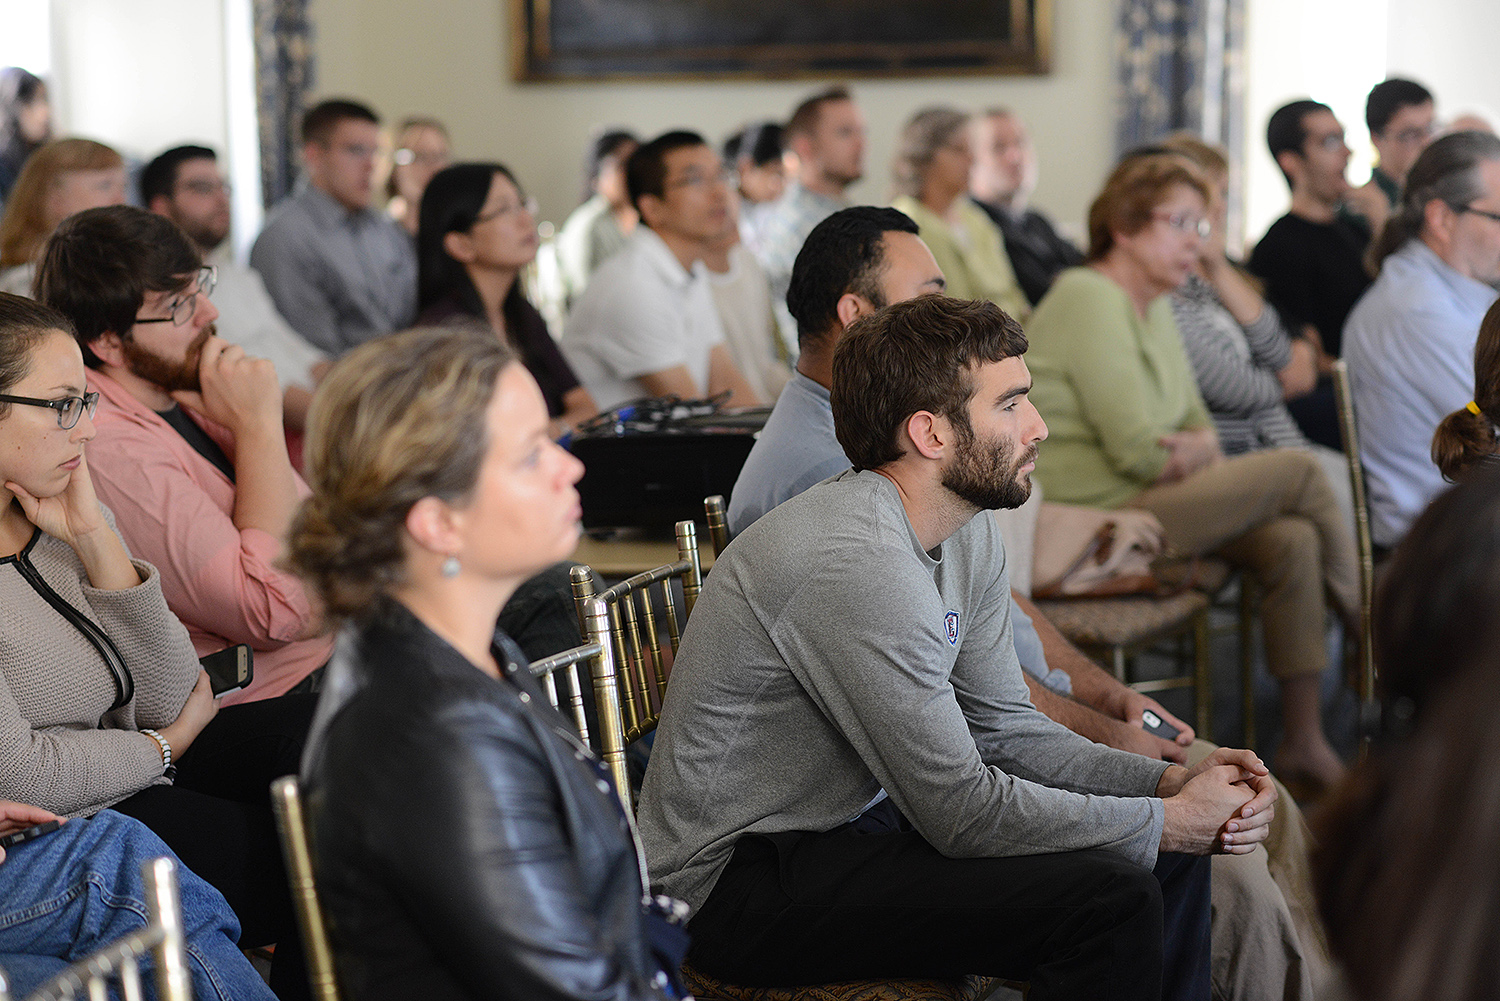 Biophysics Retreat at Wadsworth Mansion Sept 29, 2016. (Photo by Gabi Hurlock)